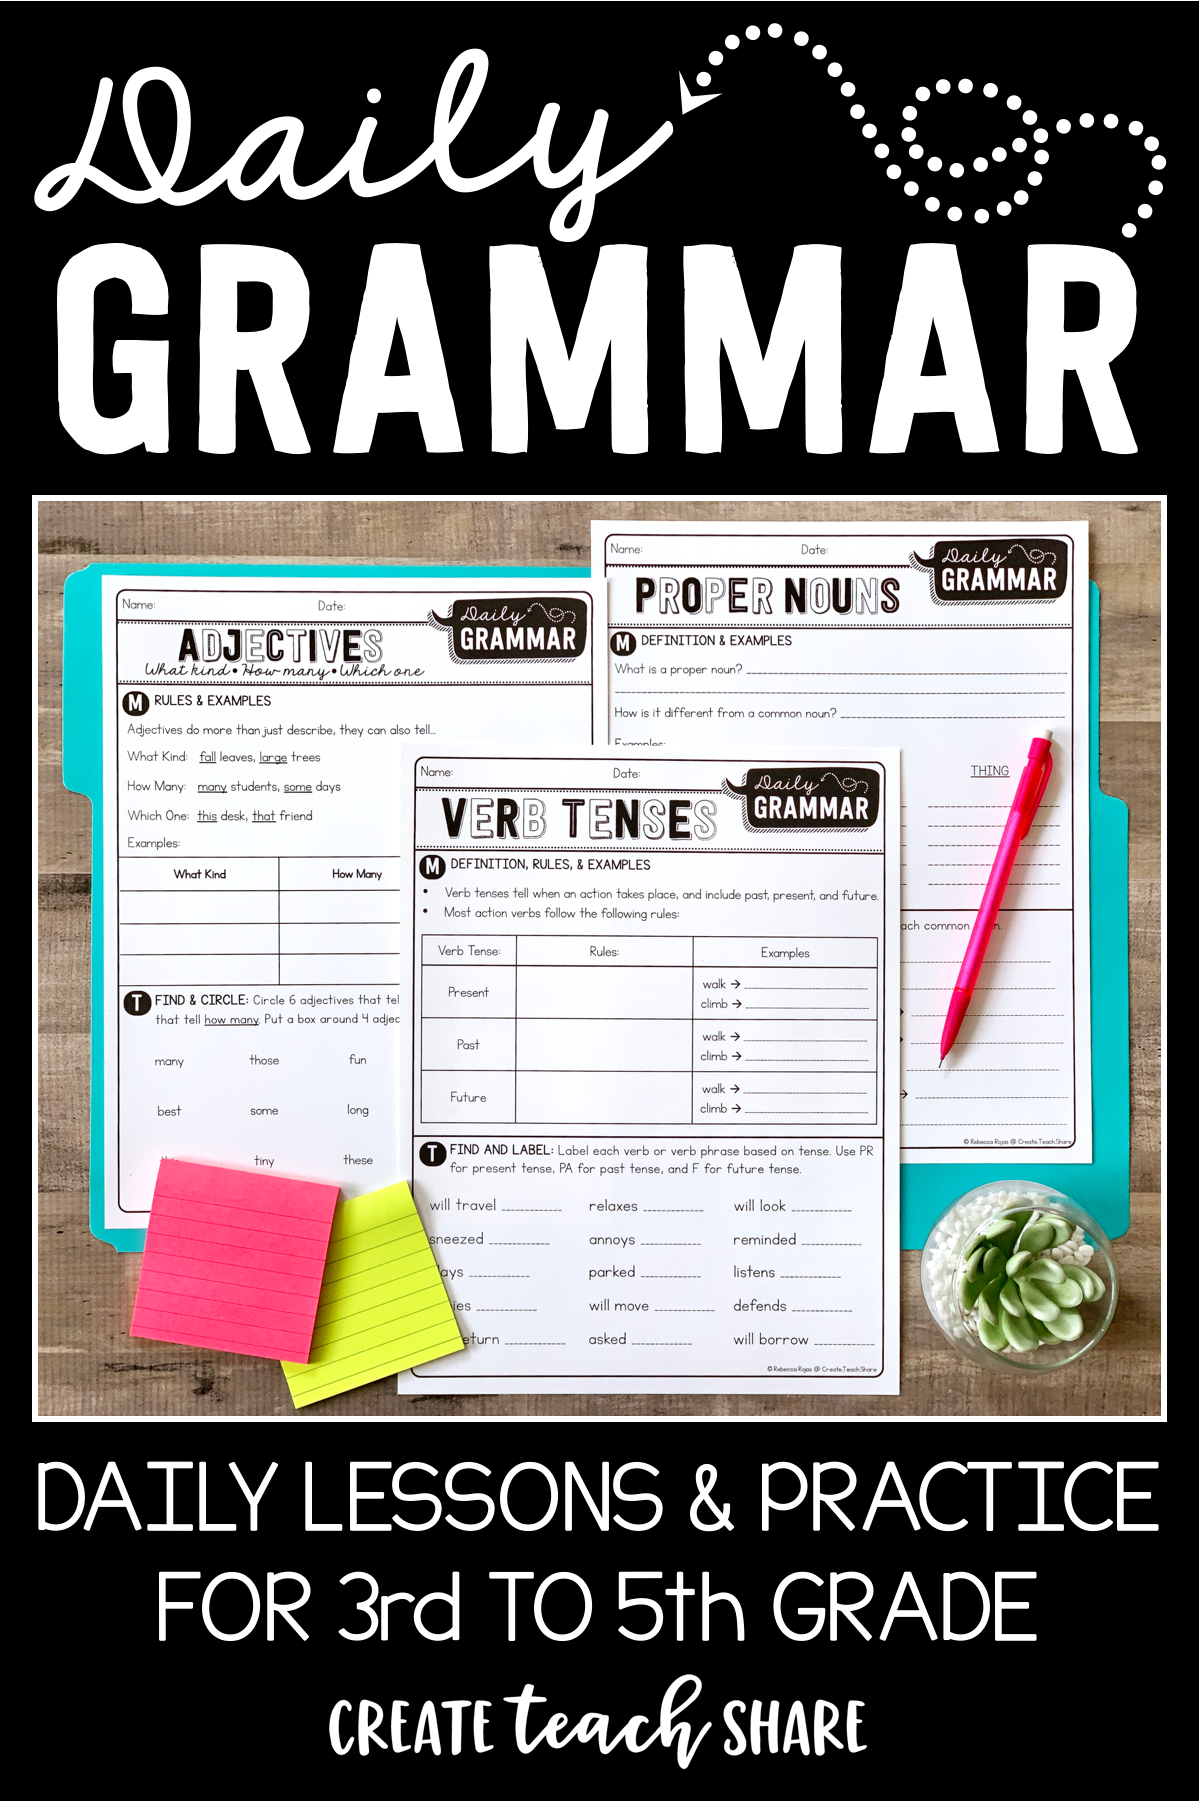 Teaching Grammar Has Never Been So Easy These Daily